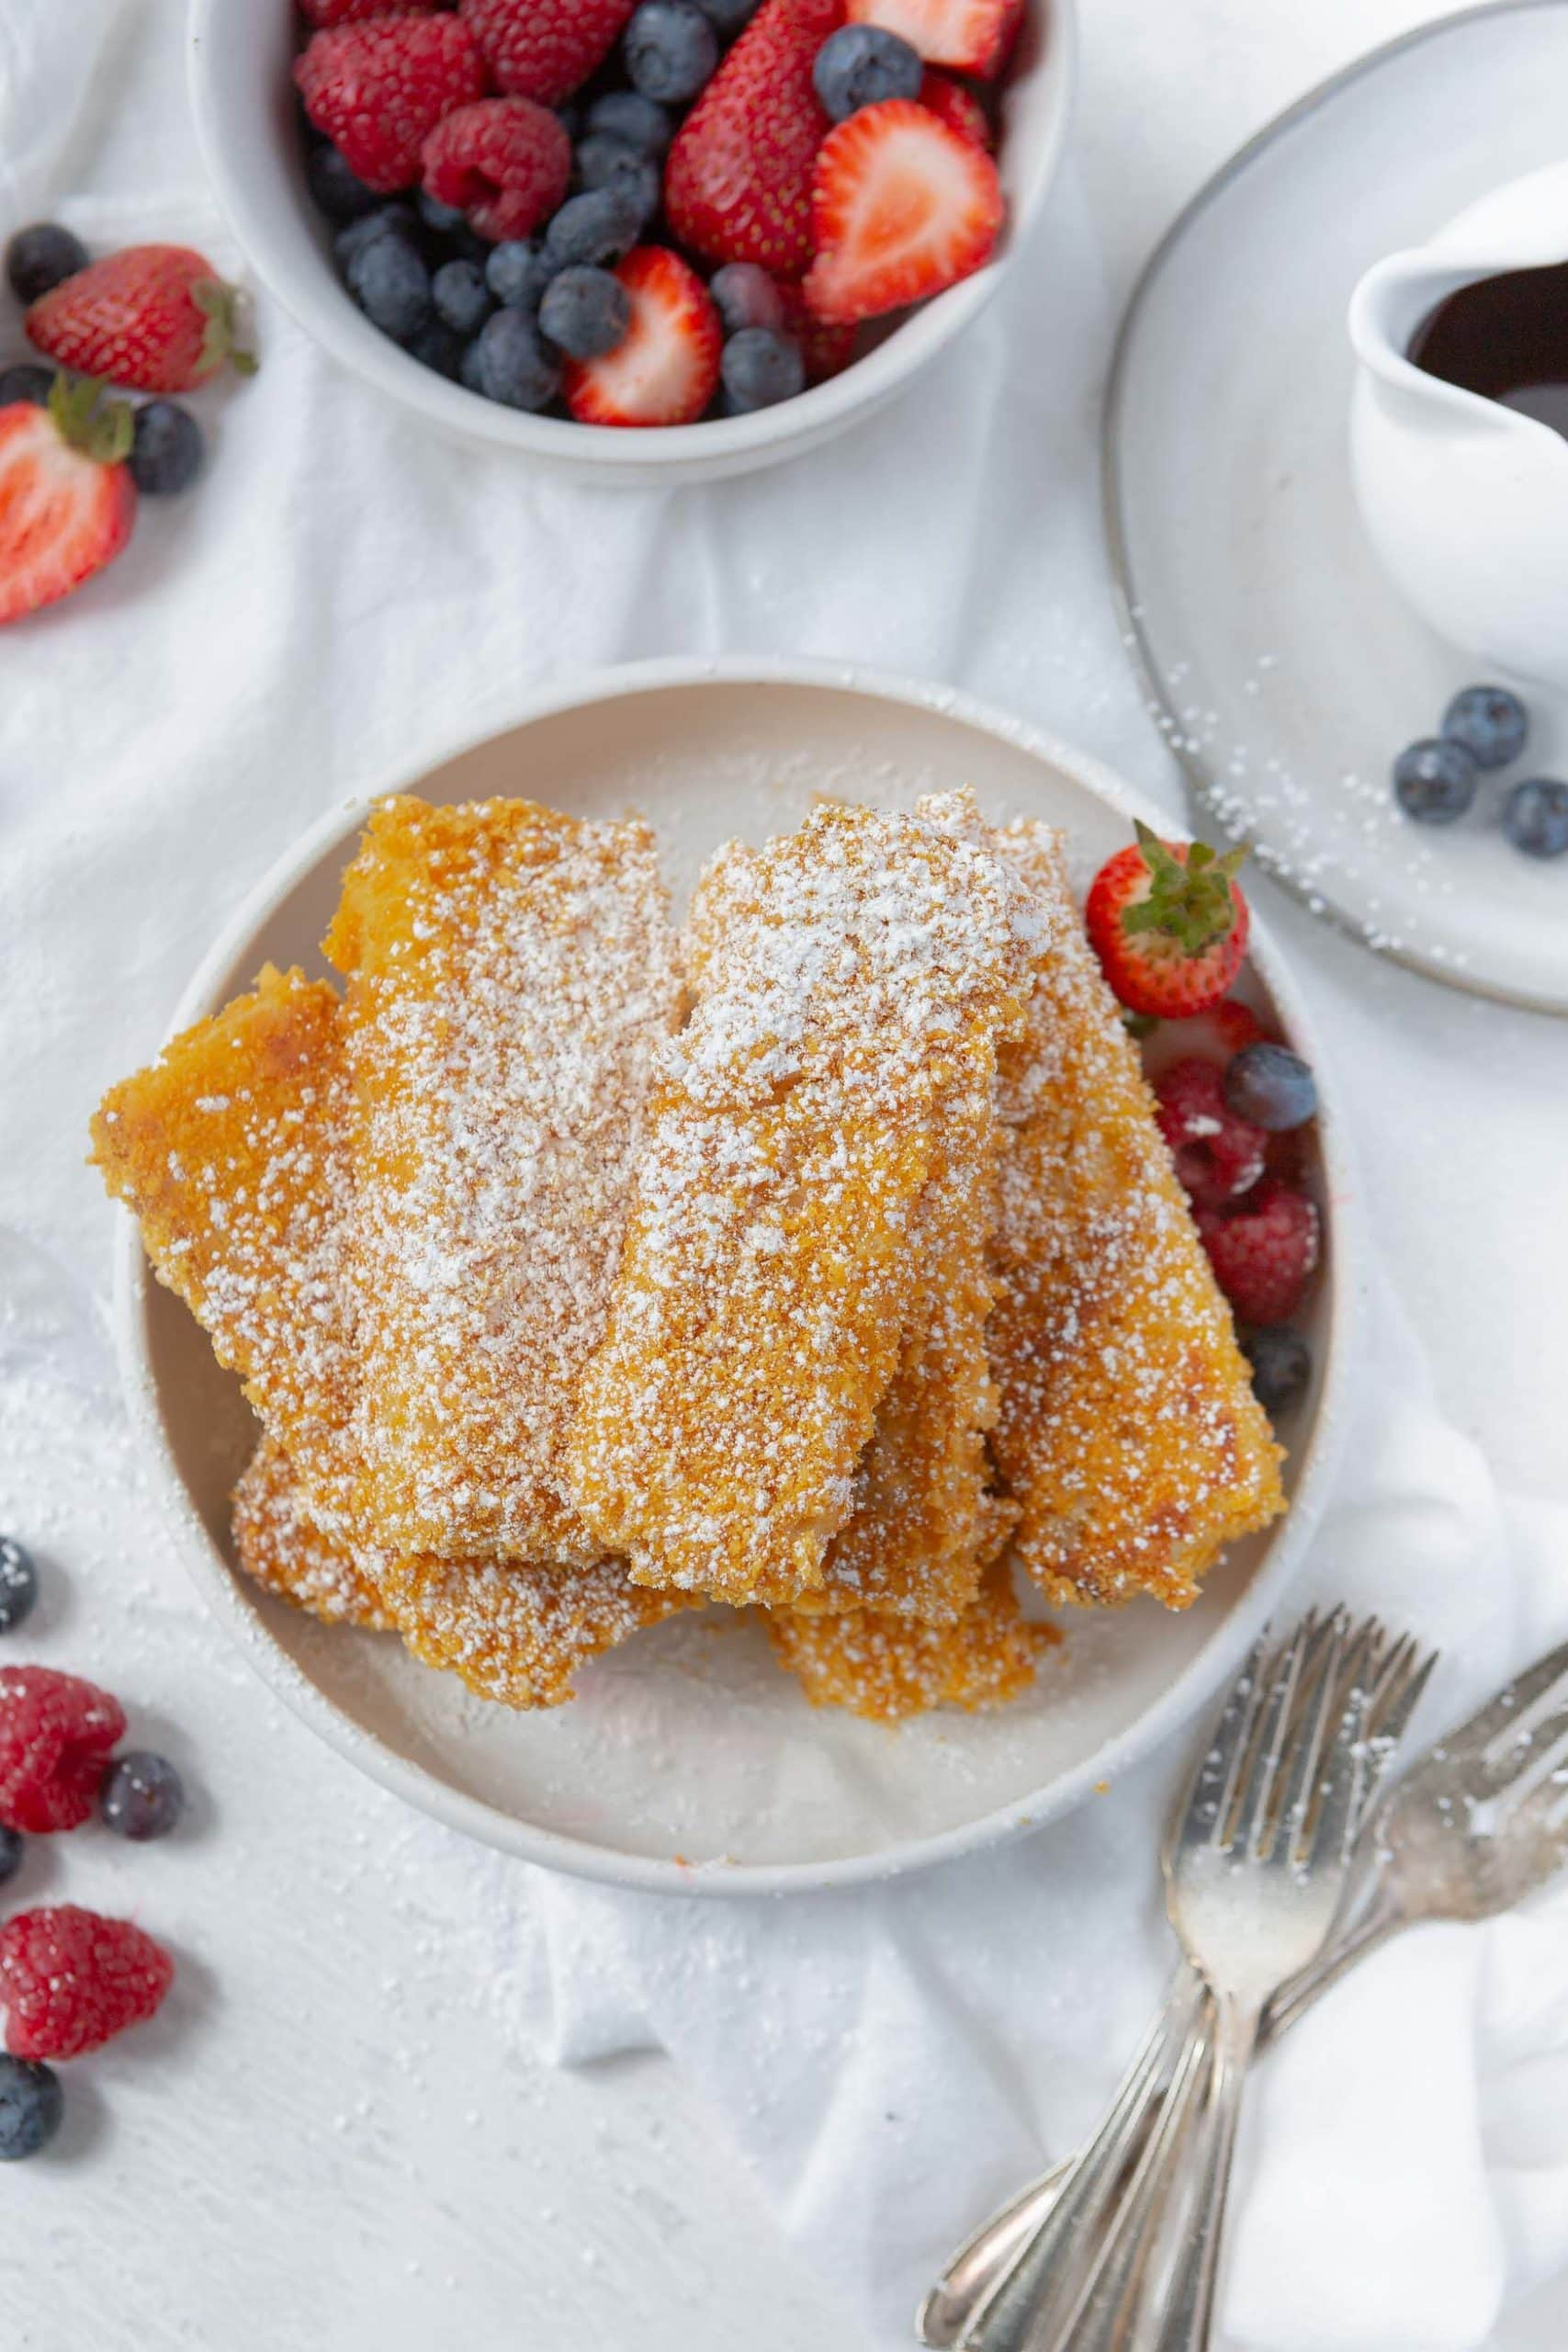 A dish stacked with French Toast sticks. The French toast is golden brown and sprinkled with powdered sugar. There are three forks next to the plate and sliced strawberries are around the French toast.